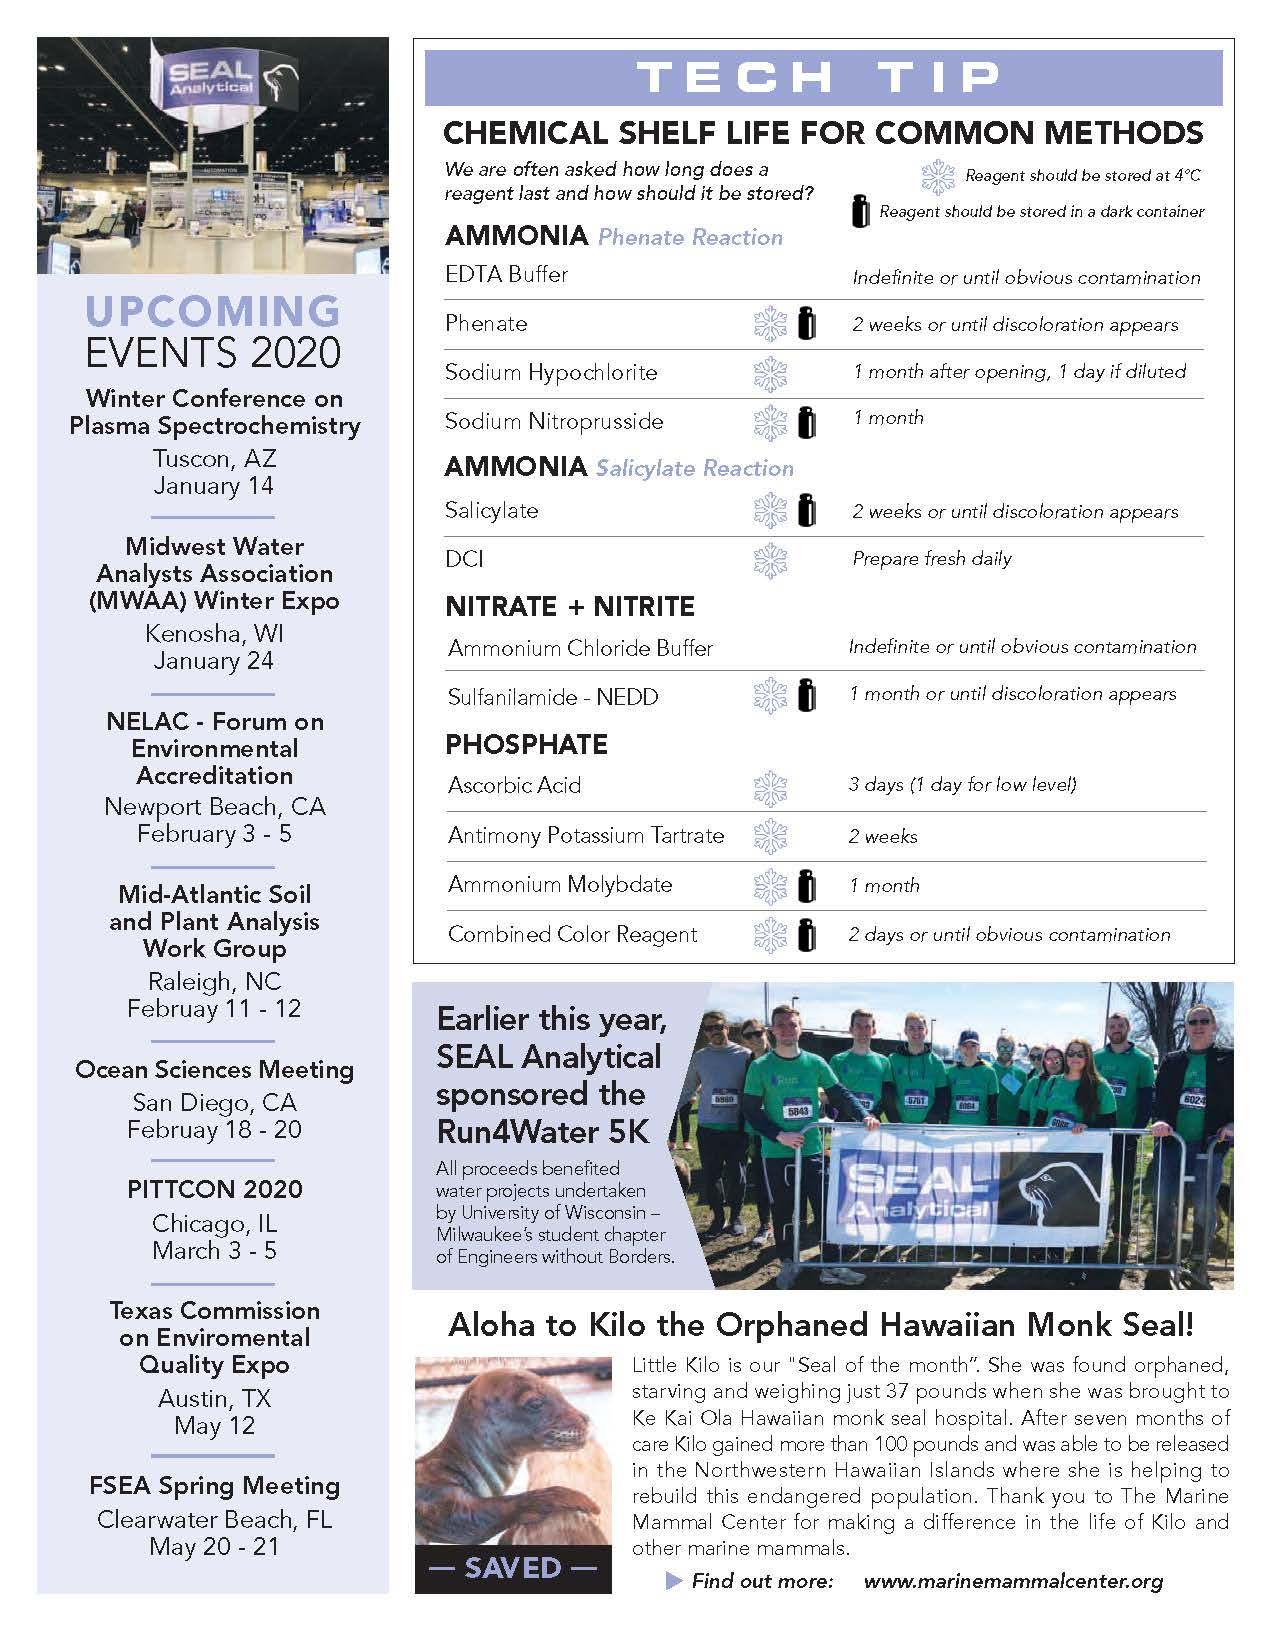 SEAL Analytical Newsletter Fall 2019 Page 3